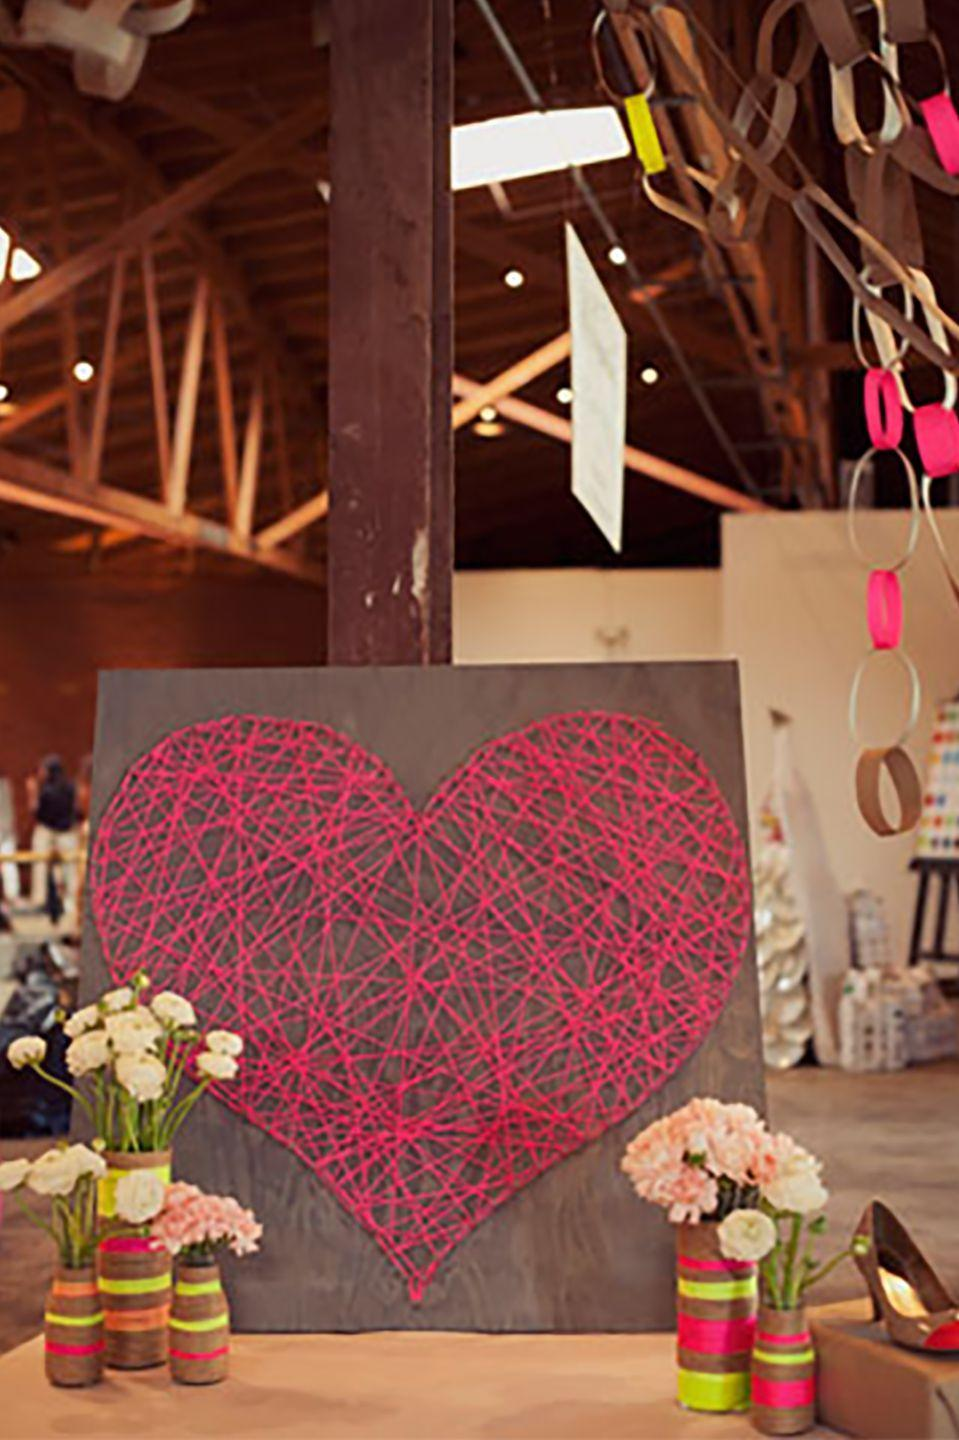 """<p>Pull on the heart strings of your loved one with this lovely piece of art. Just latch red string around nails arranged in a heart shape. </p><p><strong>Get the tutorial at <a href=""""http://greenweddingshoes.com/diy-string-heart/"""" rel=""""nofollow noopener"""" target=""""_blank"""" data-ylk=""""slk:Green Wedding Shoes"""" class=""""link rapid-noclick-resp"""">Green Wedding Shoes</a>.</strong> </p><p><strong><a class=""""link rapid-noclick-resp"""" href=""""https://www.amazon.com/s/ref=nb_sb_noss_2?url=search-alias%3Daps&field-keywords=pink+thread&rh=i%3Aaps%2Ck%3Apink+thread&tag=syn-yahoo-20&ascsubtag=%5Bartid%7C10050.g.2971%5Bsrc%7Cyahoo-us"""" rel=""""nofollow noopener"""" target=""""_blank"""" data-ylk=""""slk:SHOP PINK THREAD"""">SHOP PINK THREAD</a><br></strong></p>"""